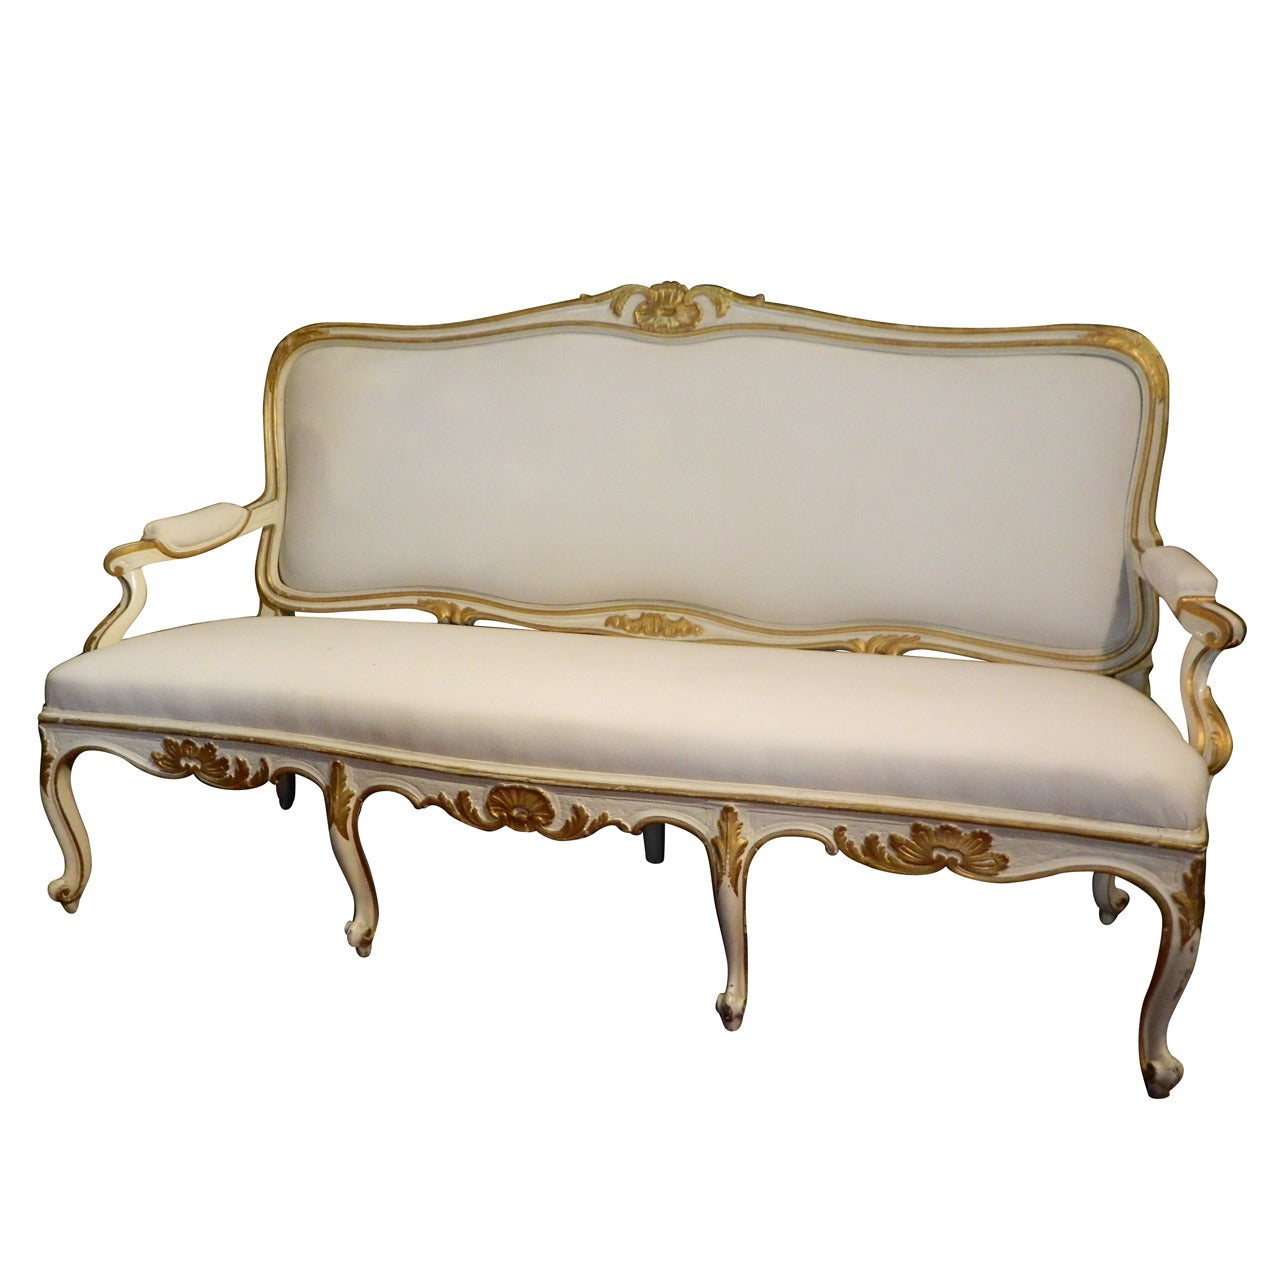 Gustavian Painted and Parcel Gilt Canape or Sofa, 19th Century